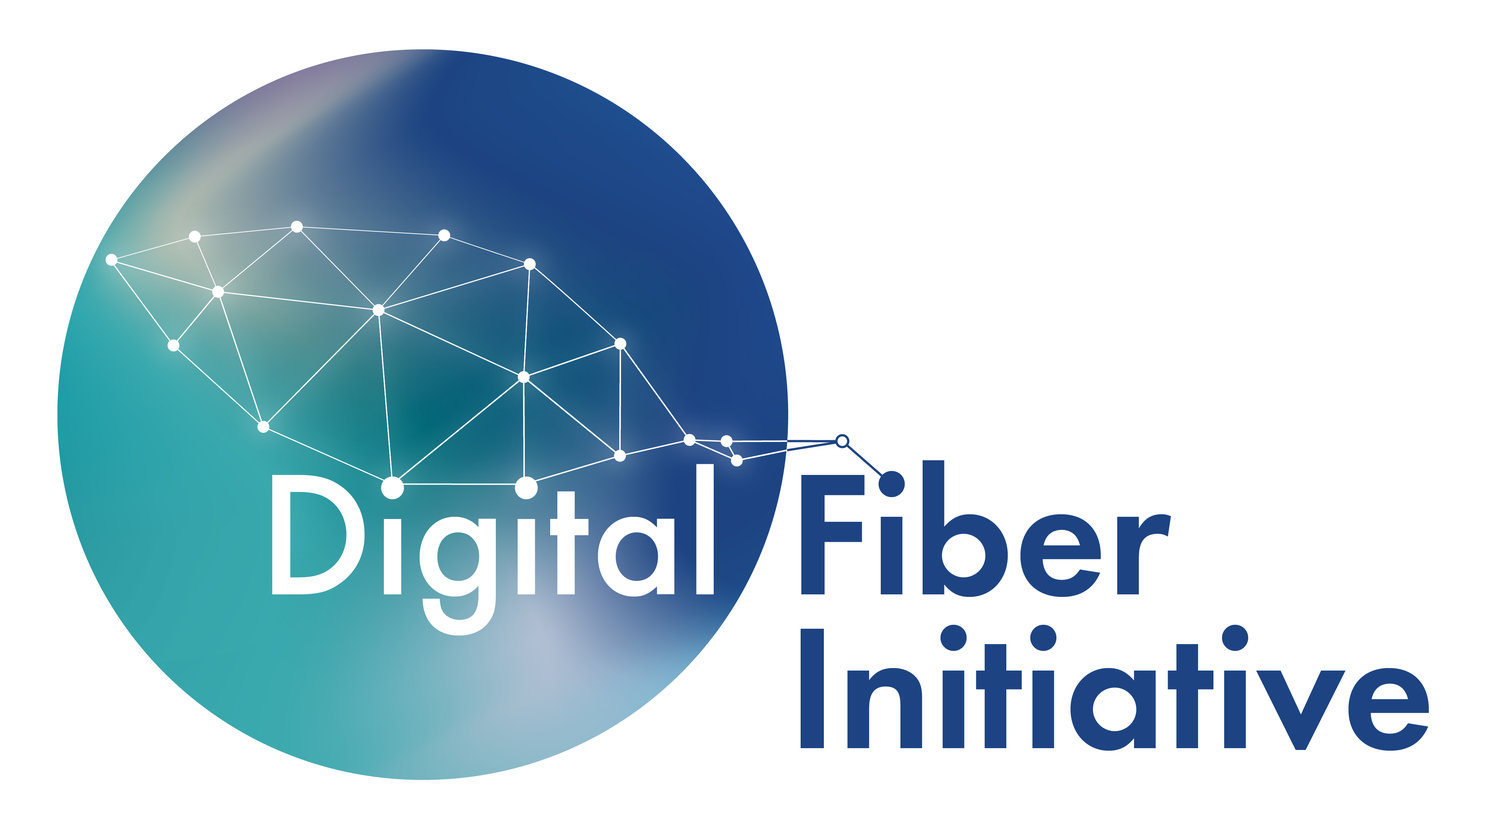 Digital Fiber Initiative